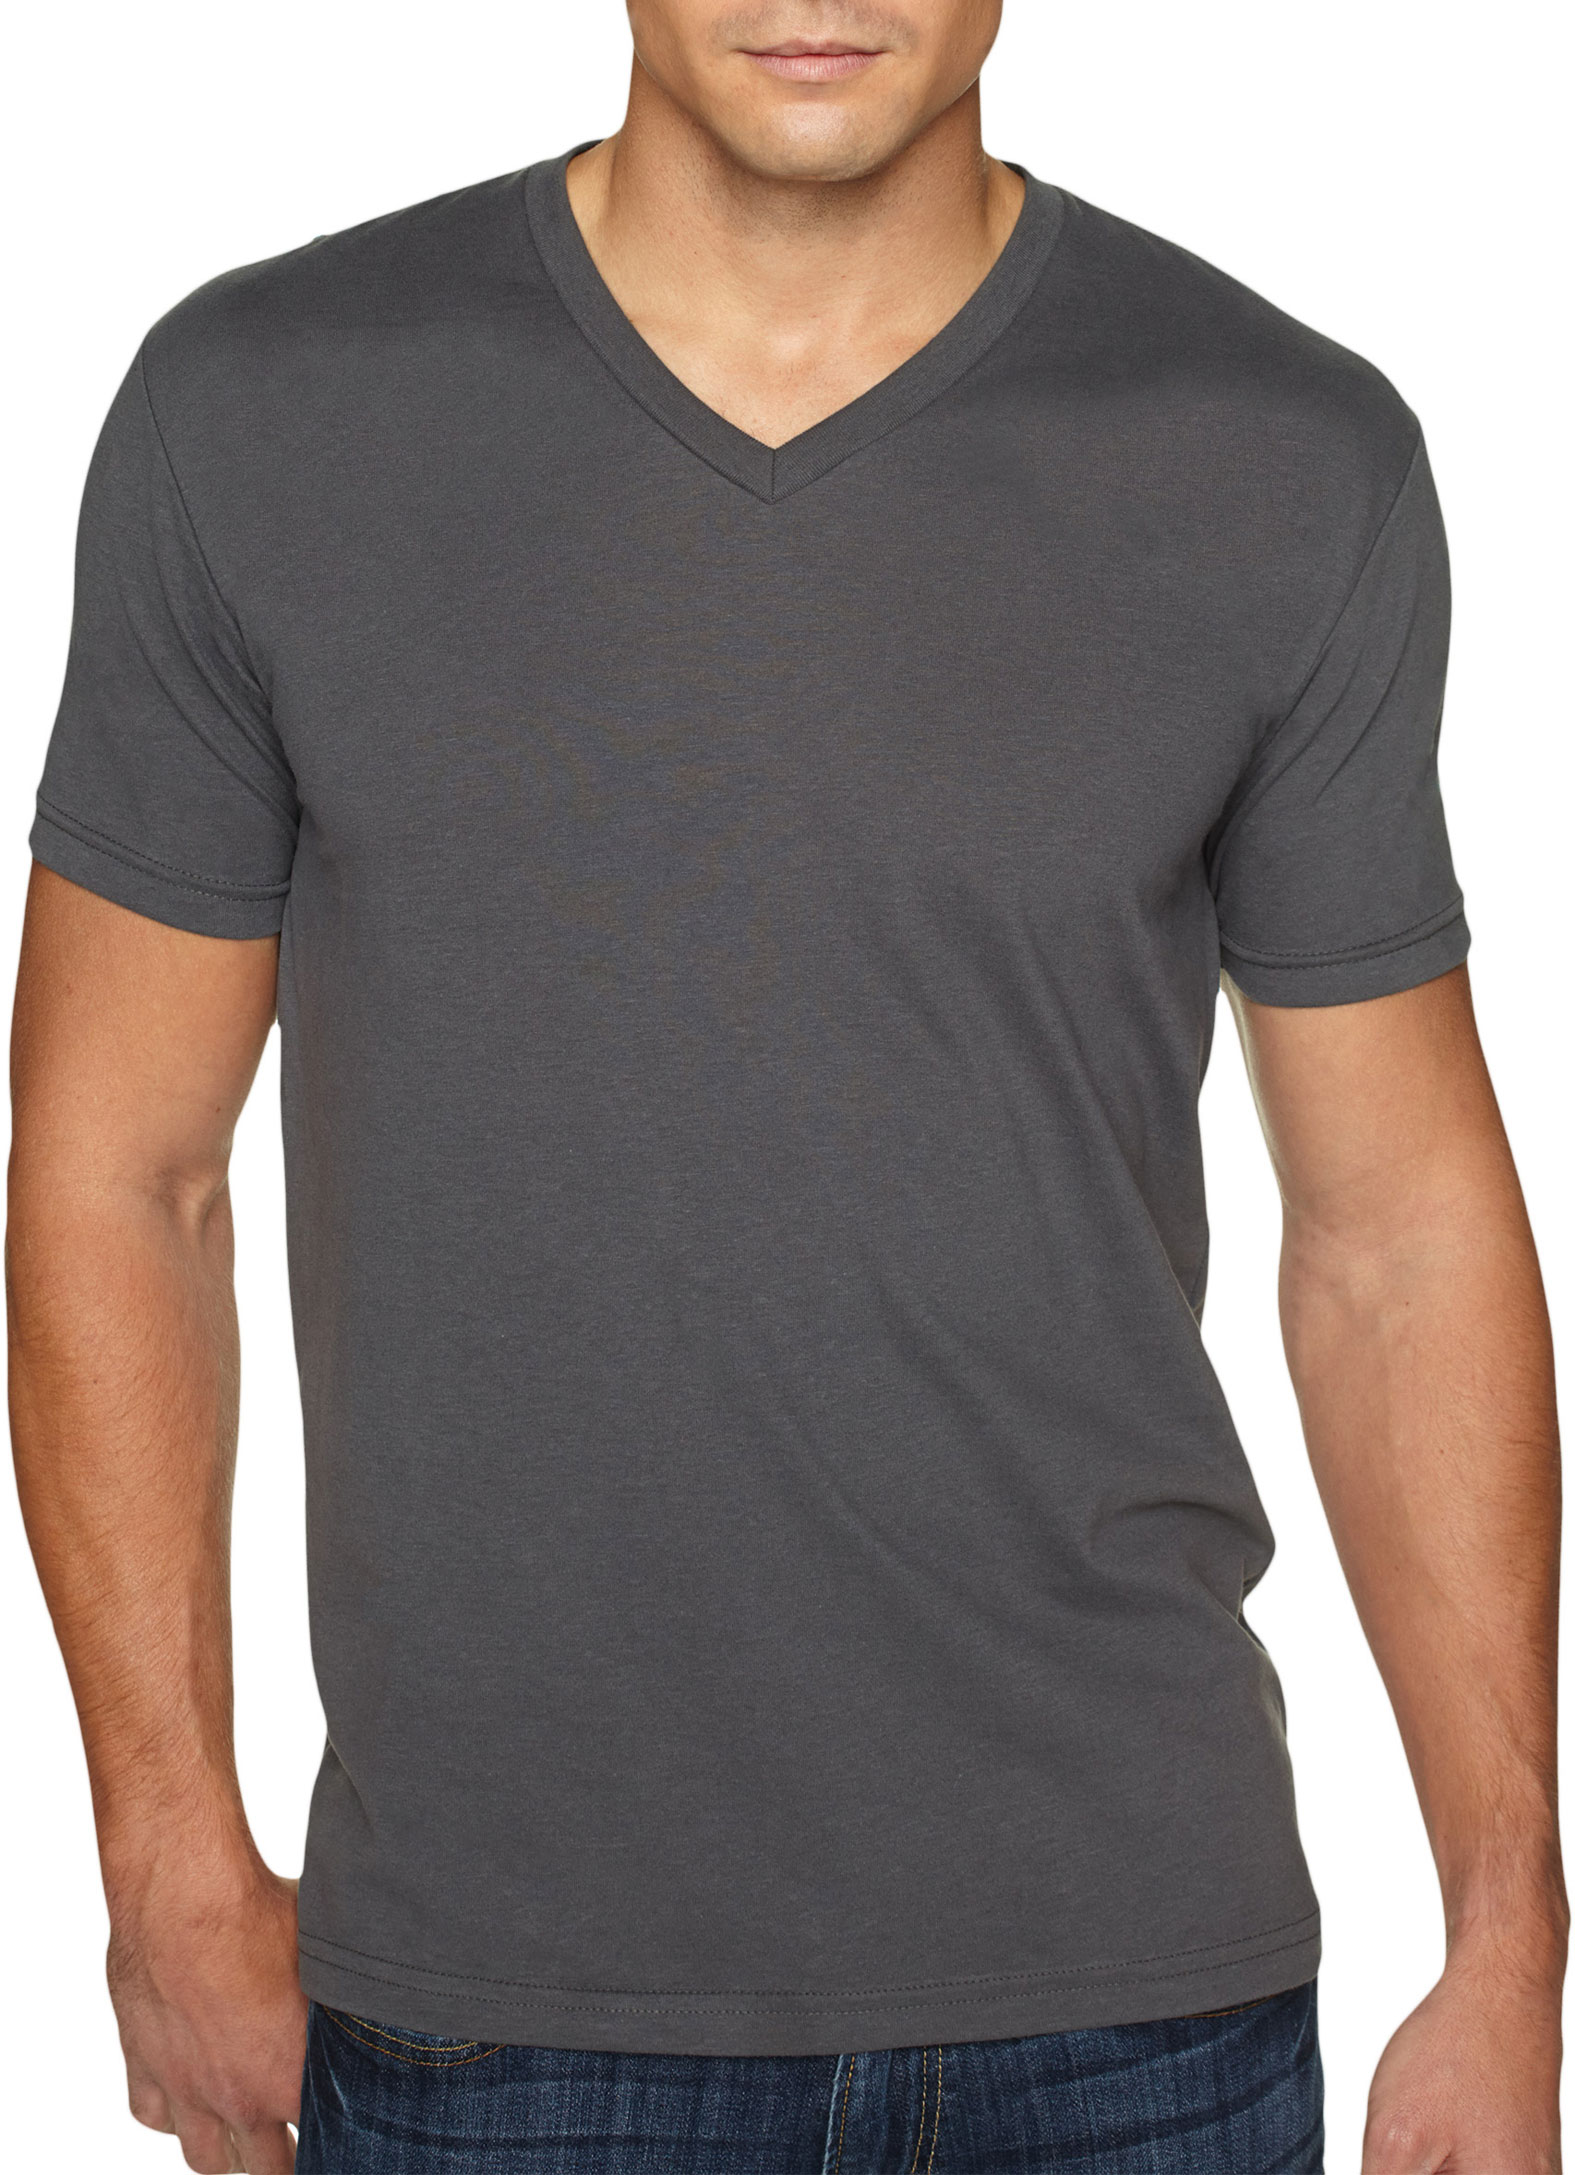 Next Level Mens Premium Sueded V-neck T-Shirt